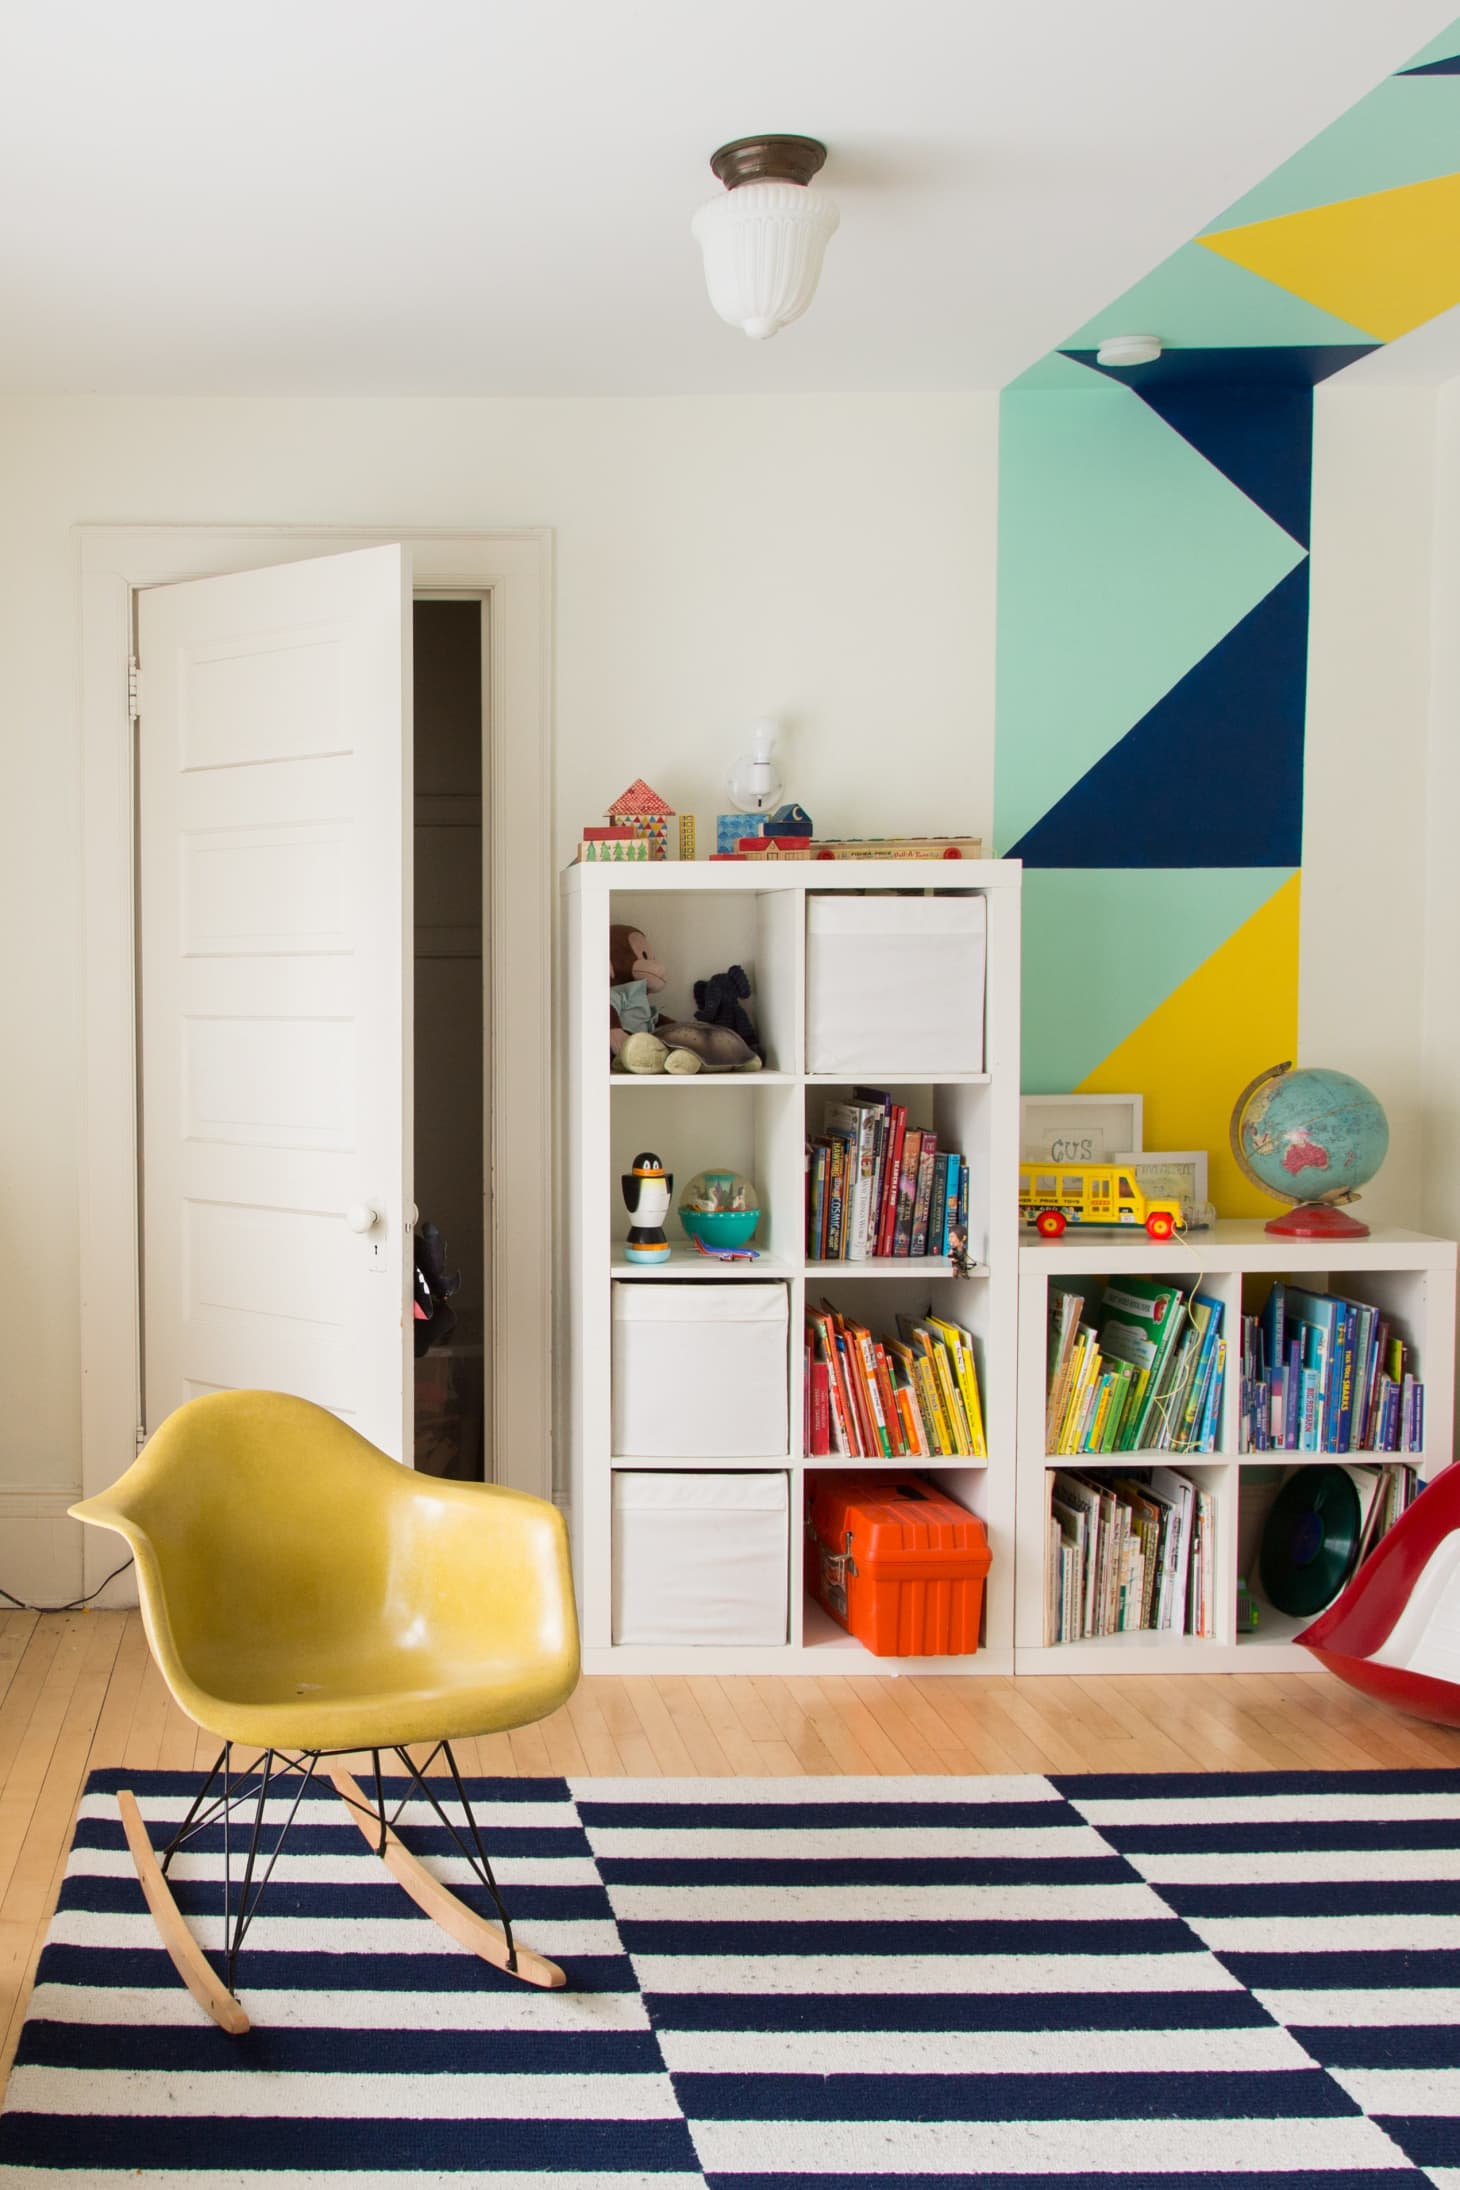 Creative & Fun Kids Bedroom Decorating Ideas | Apartment Therapy